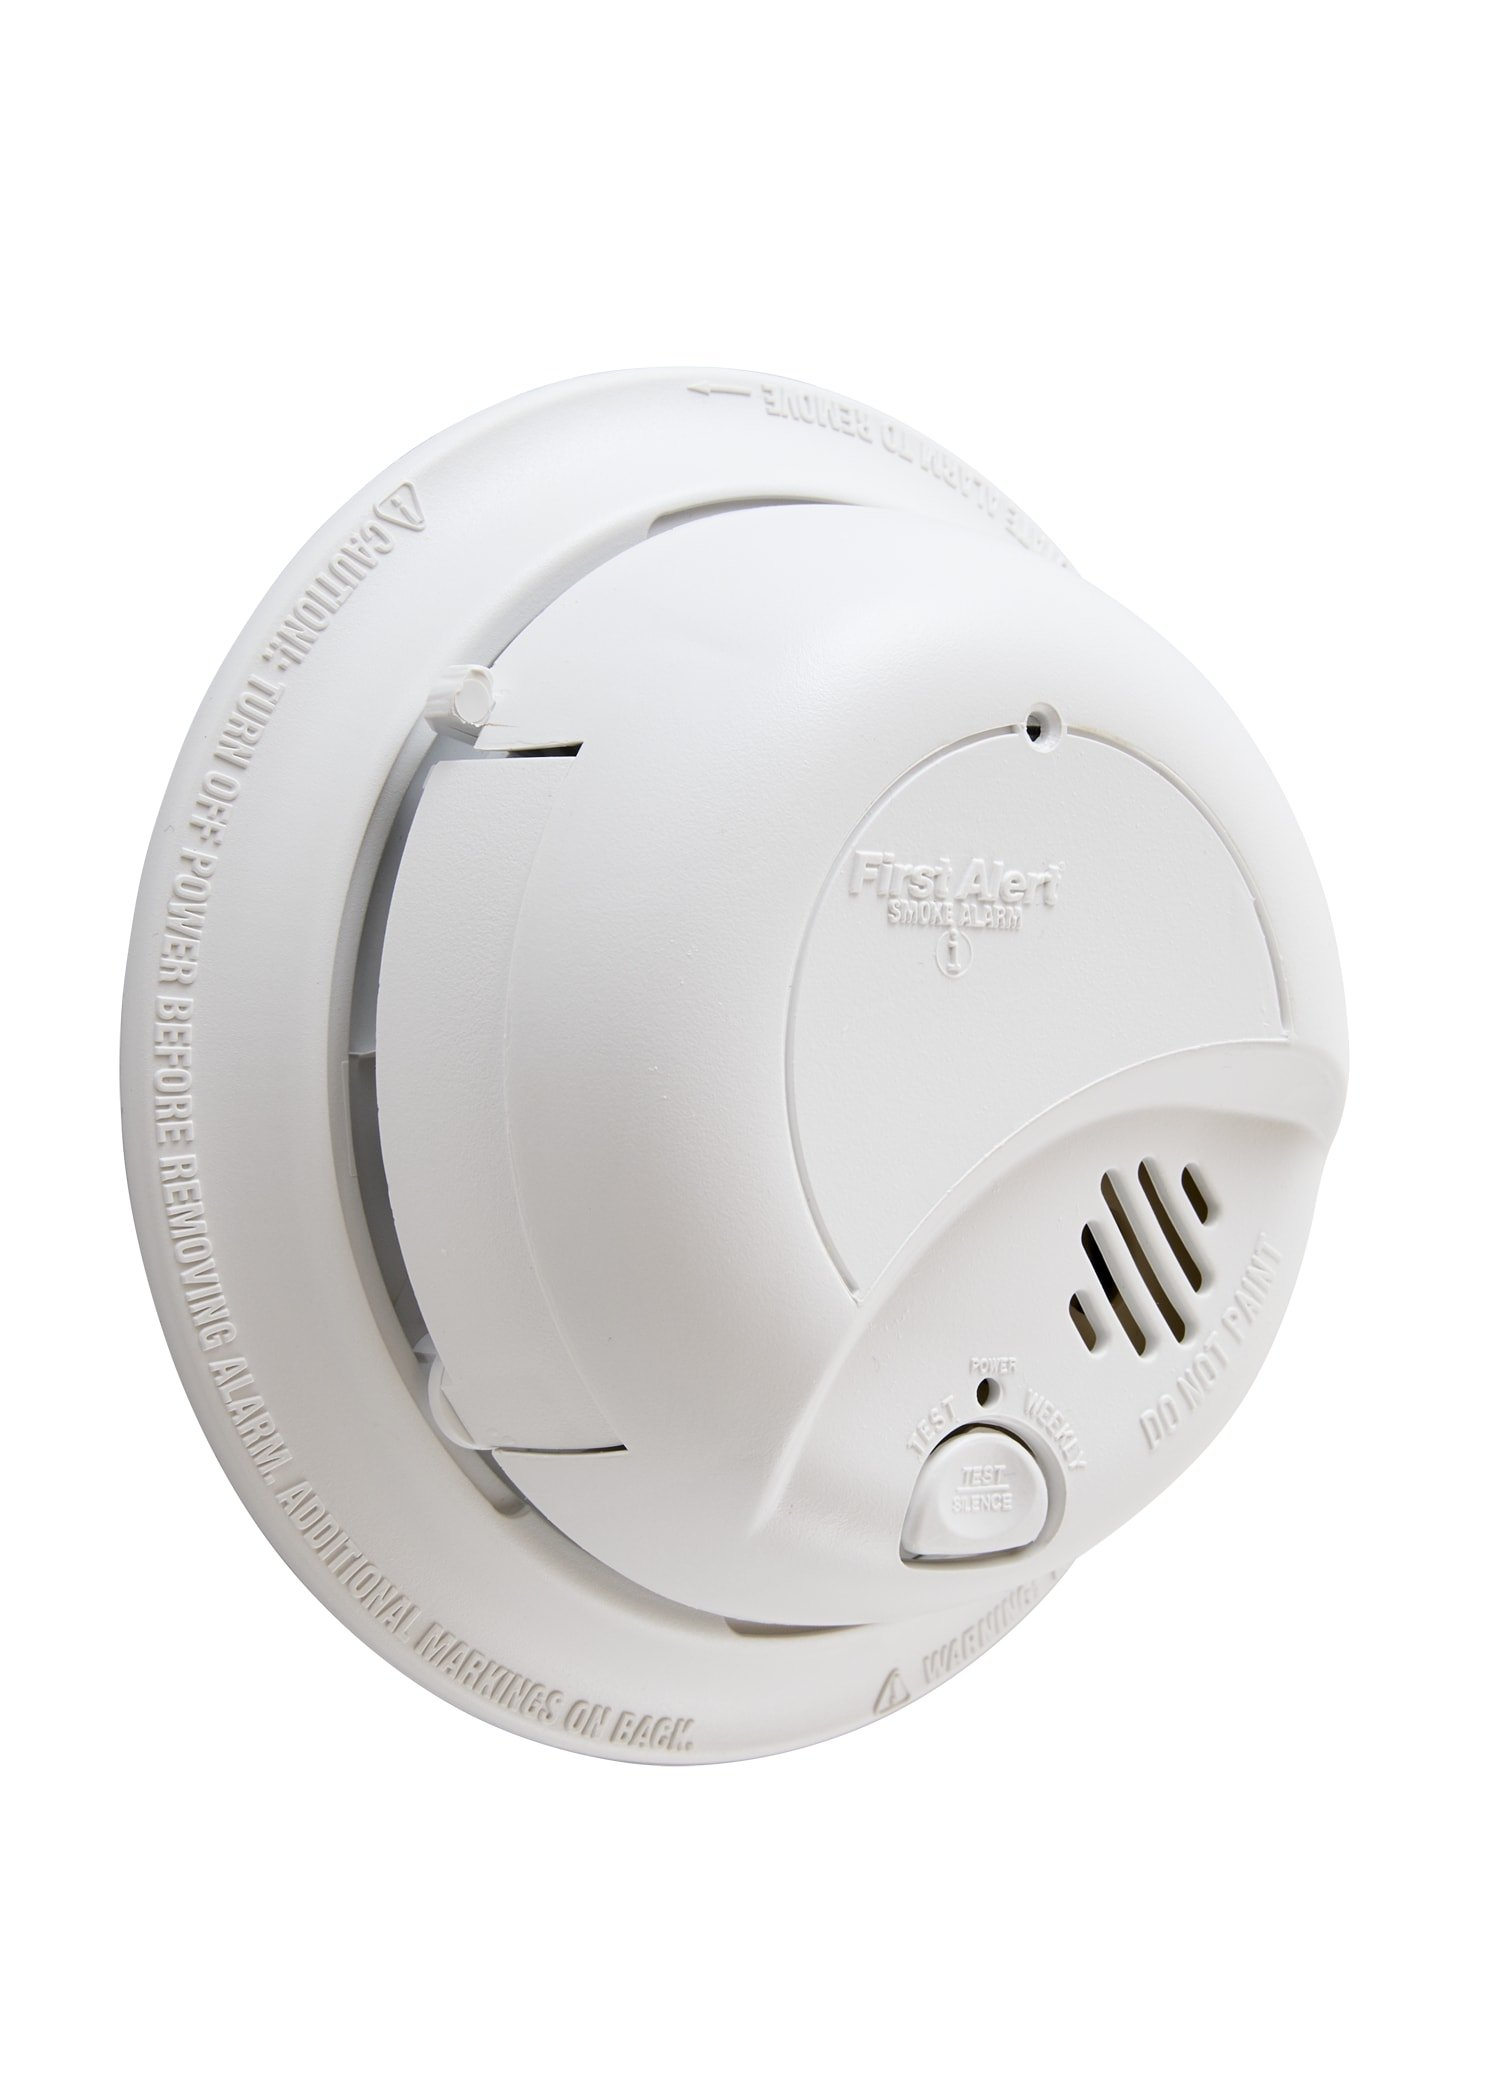 Best Smoke And Carbon Monoxide Detector 2020 Best Rated in Smoke Detectors & Fire Alarms & Helpful Customer